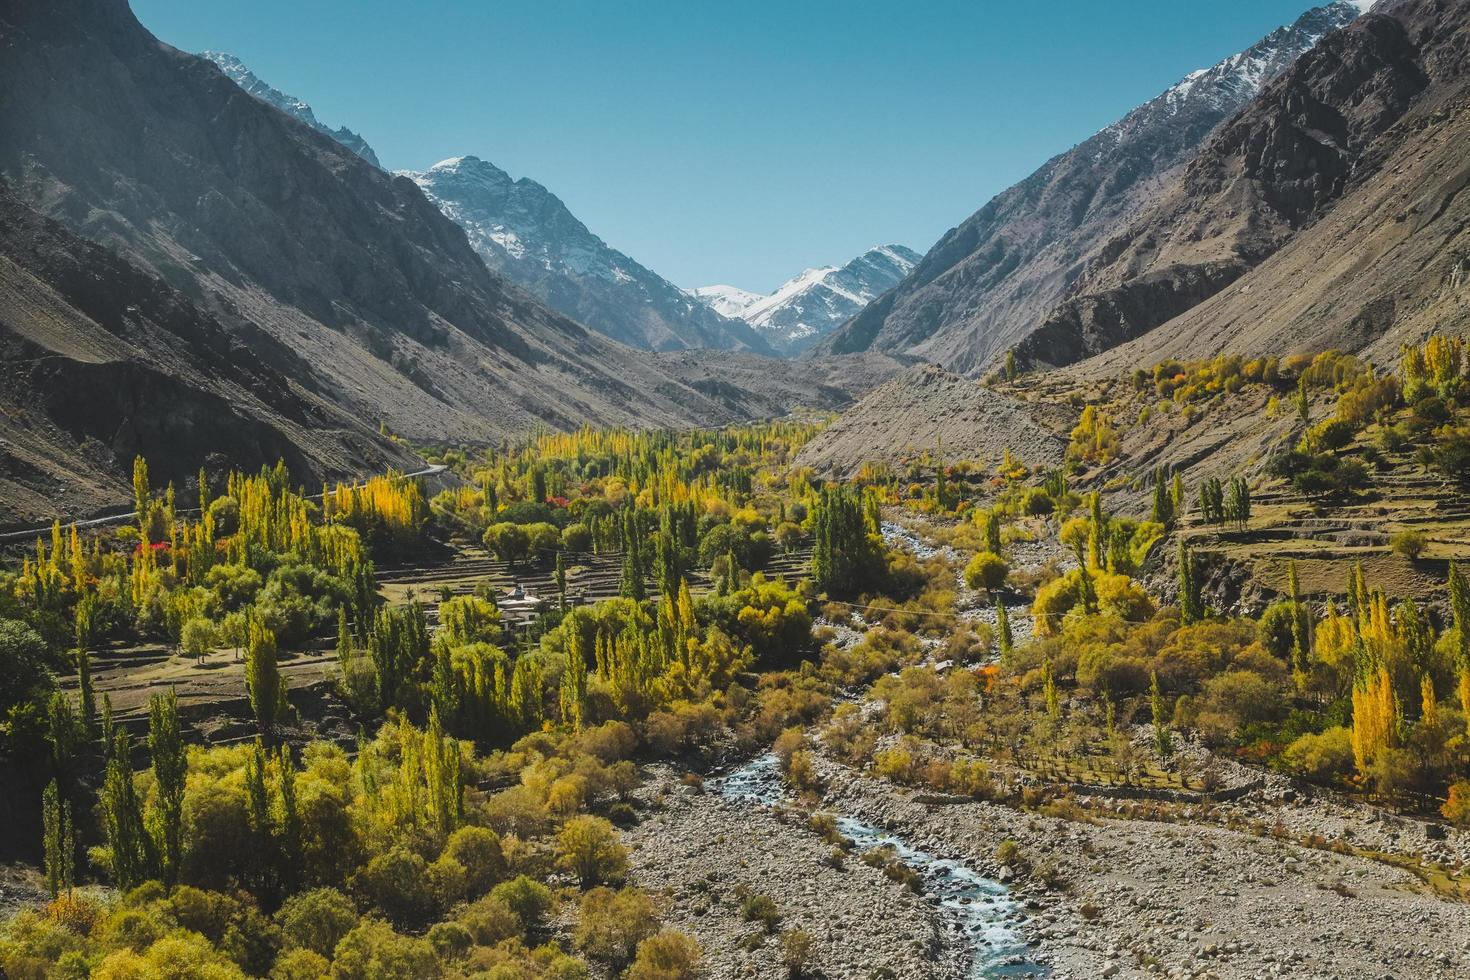 Nature landscape view of yellow and green foliage  photo